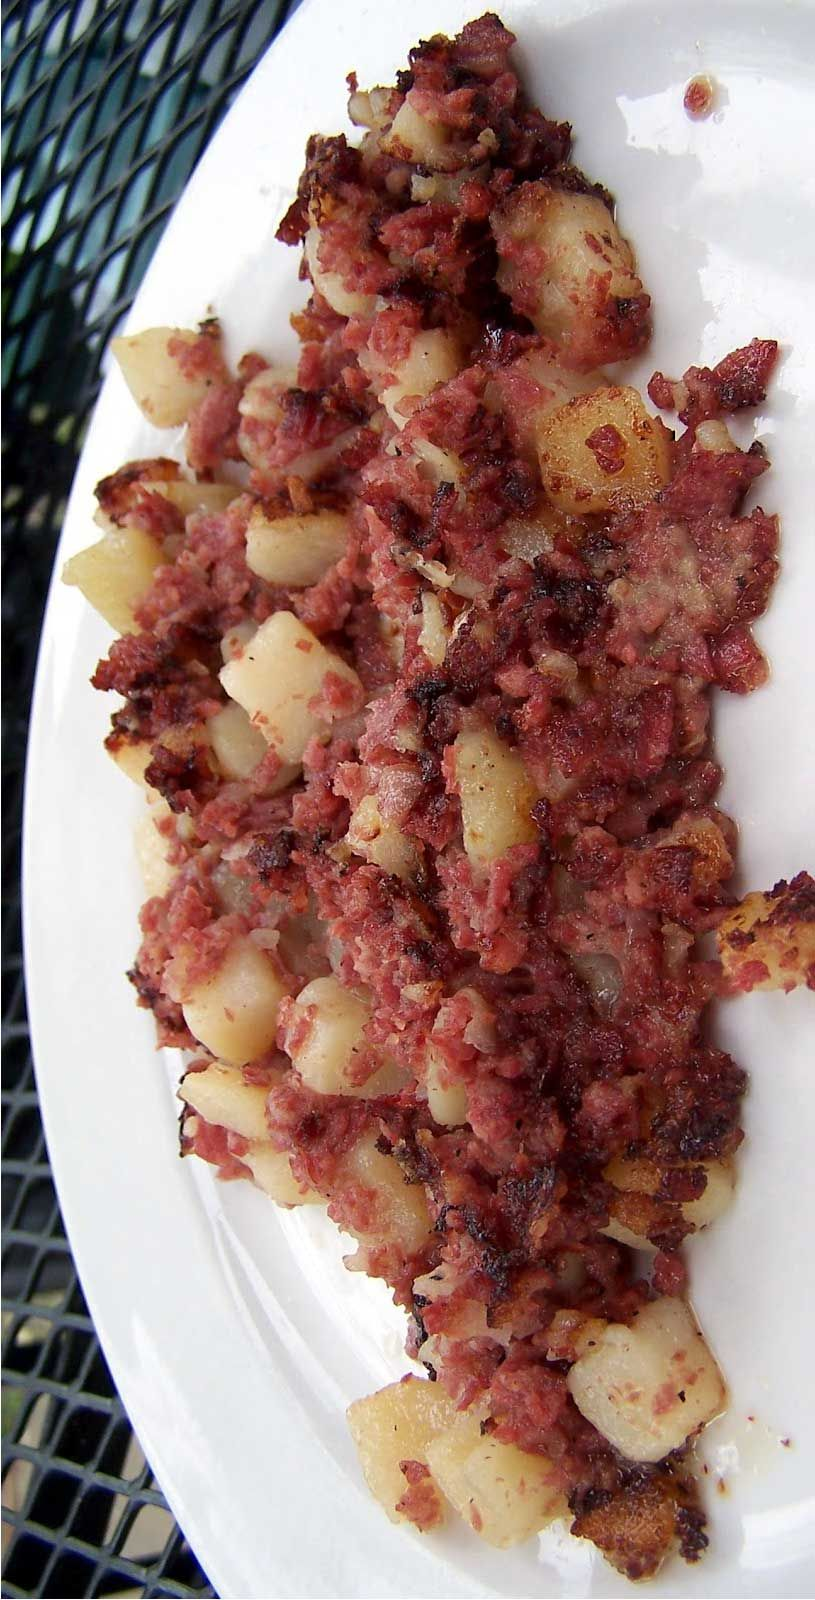 Corned Beef Hash I Will Never Make Corned Beef Hash From A Can Ever Again This Was Super Easy To Make Corned Beef Recipes Corned Beef Hash Recipe Recipes